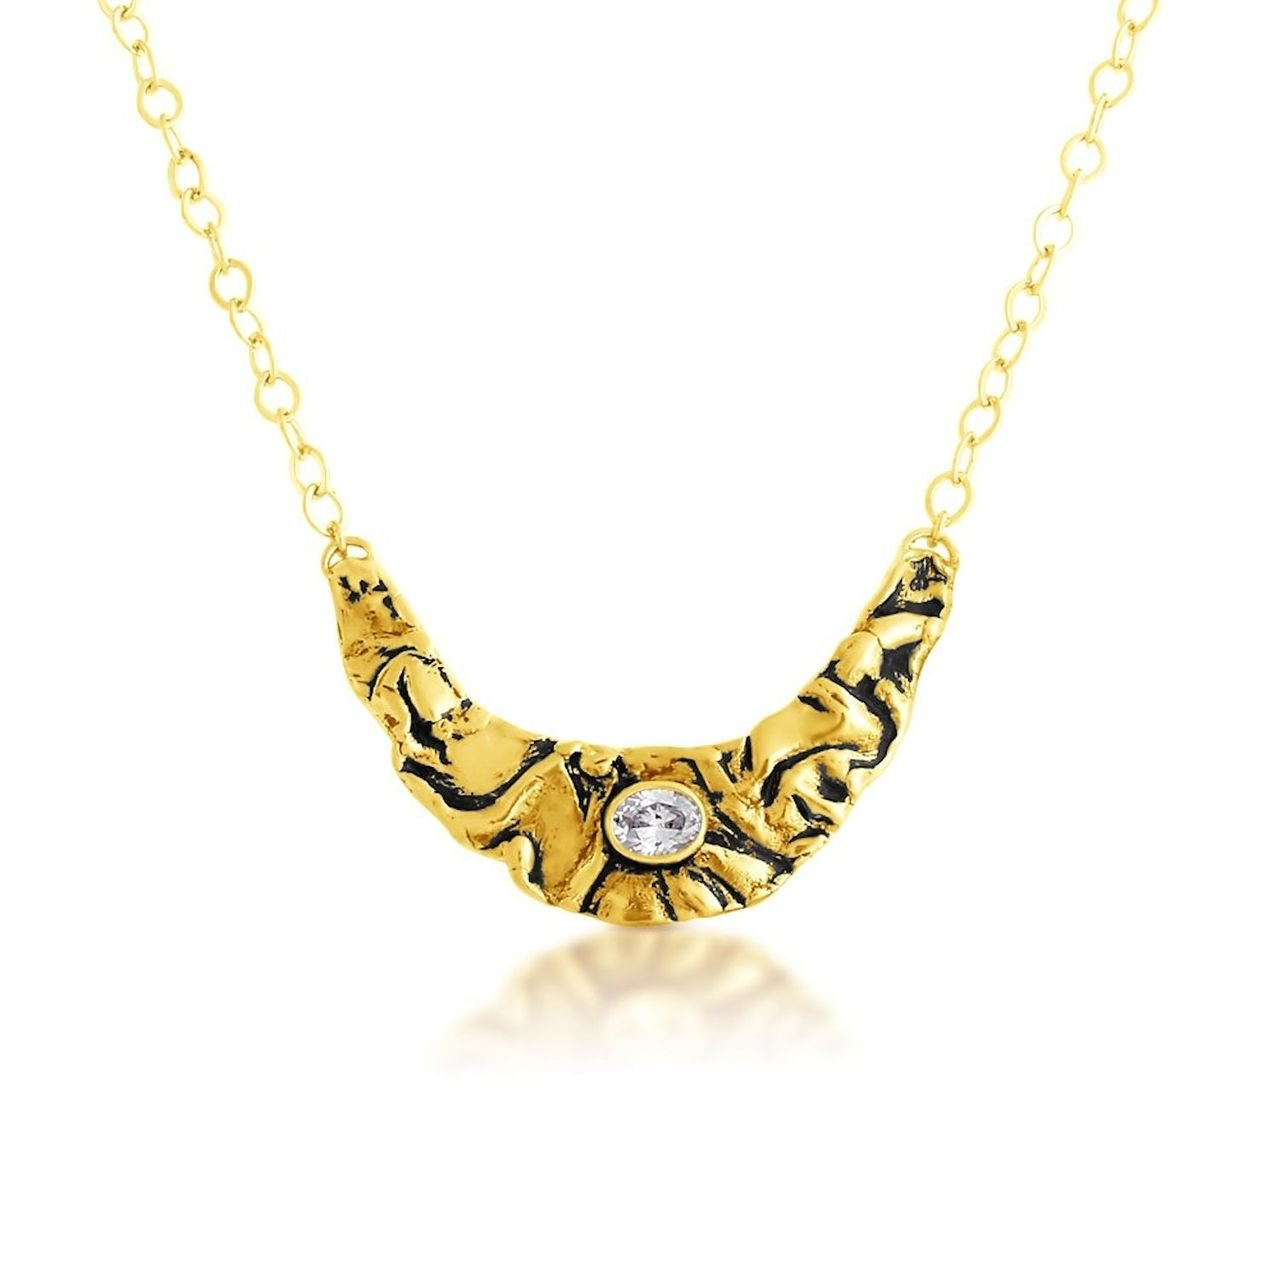 Large Wrinkled Boomerang Bib with CZ Center and Black Tone Pendant Necklace